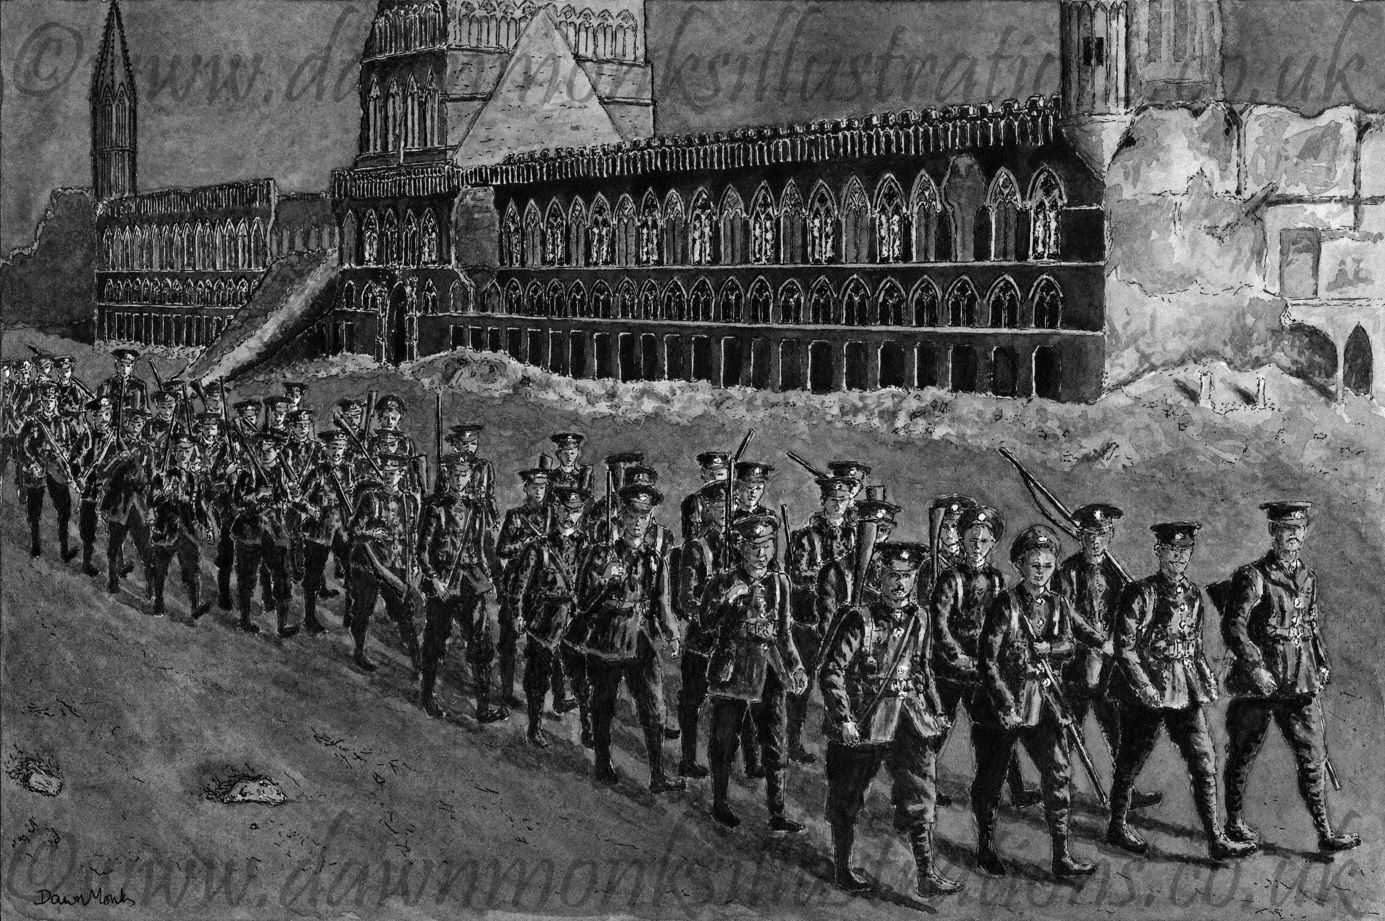 Night March Past Cloth Hall - Pen & Ink